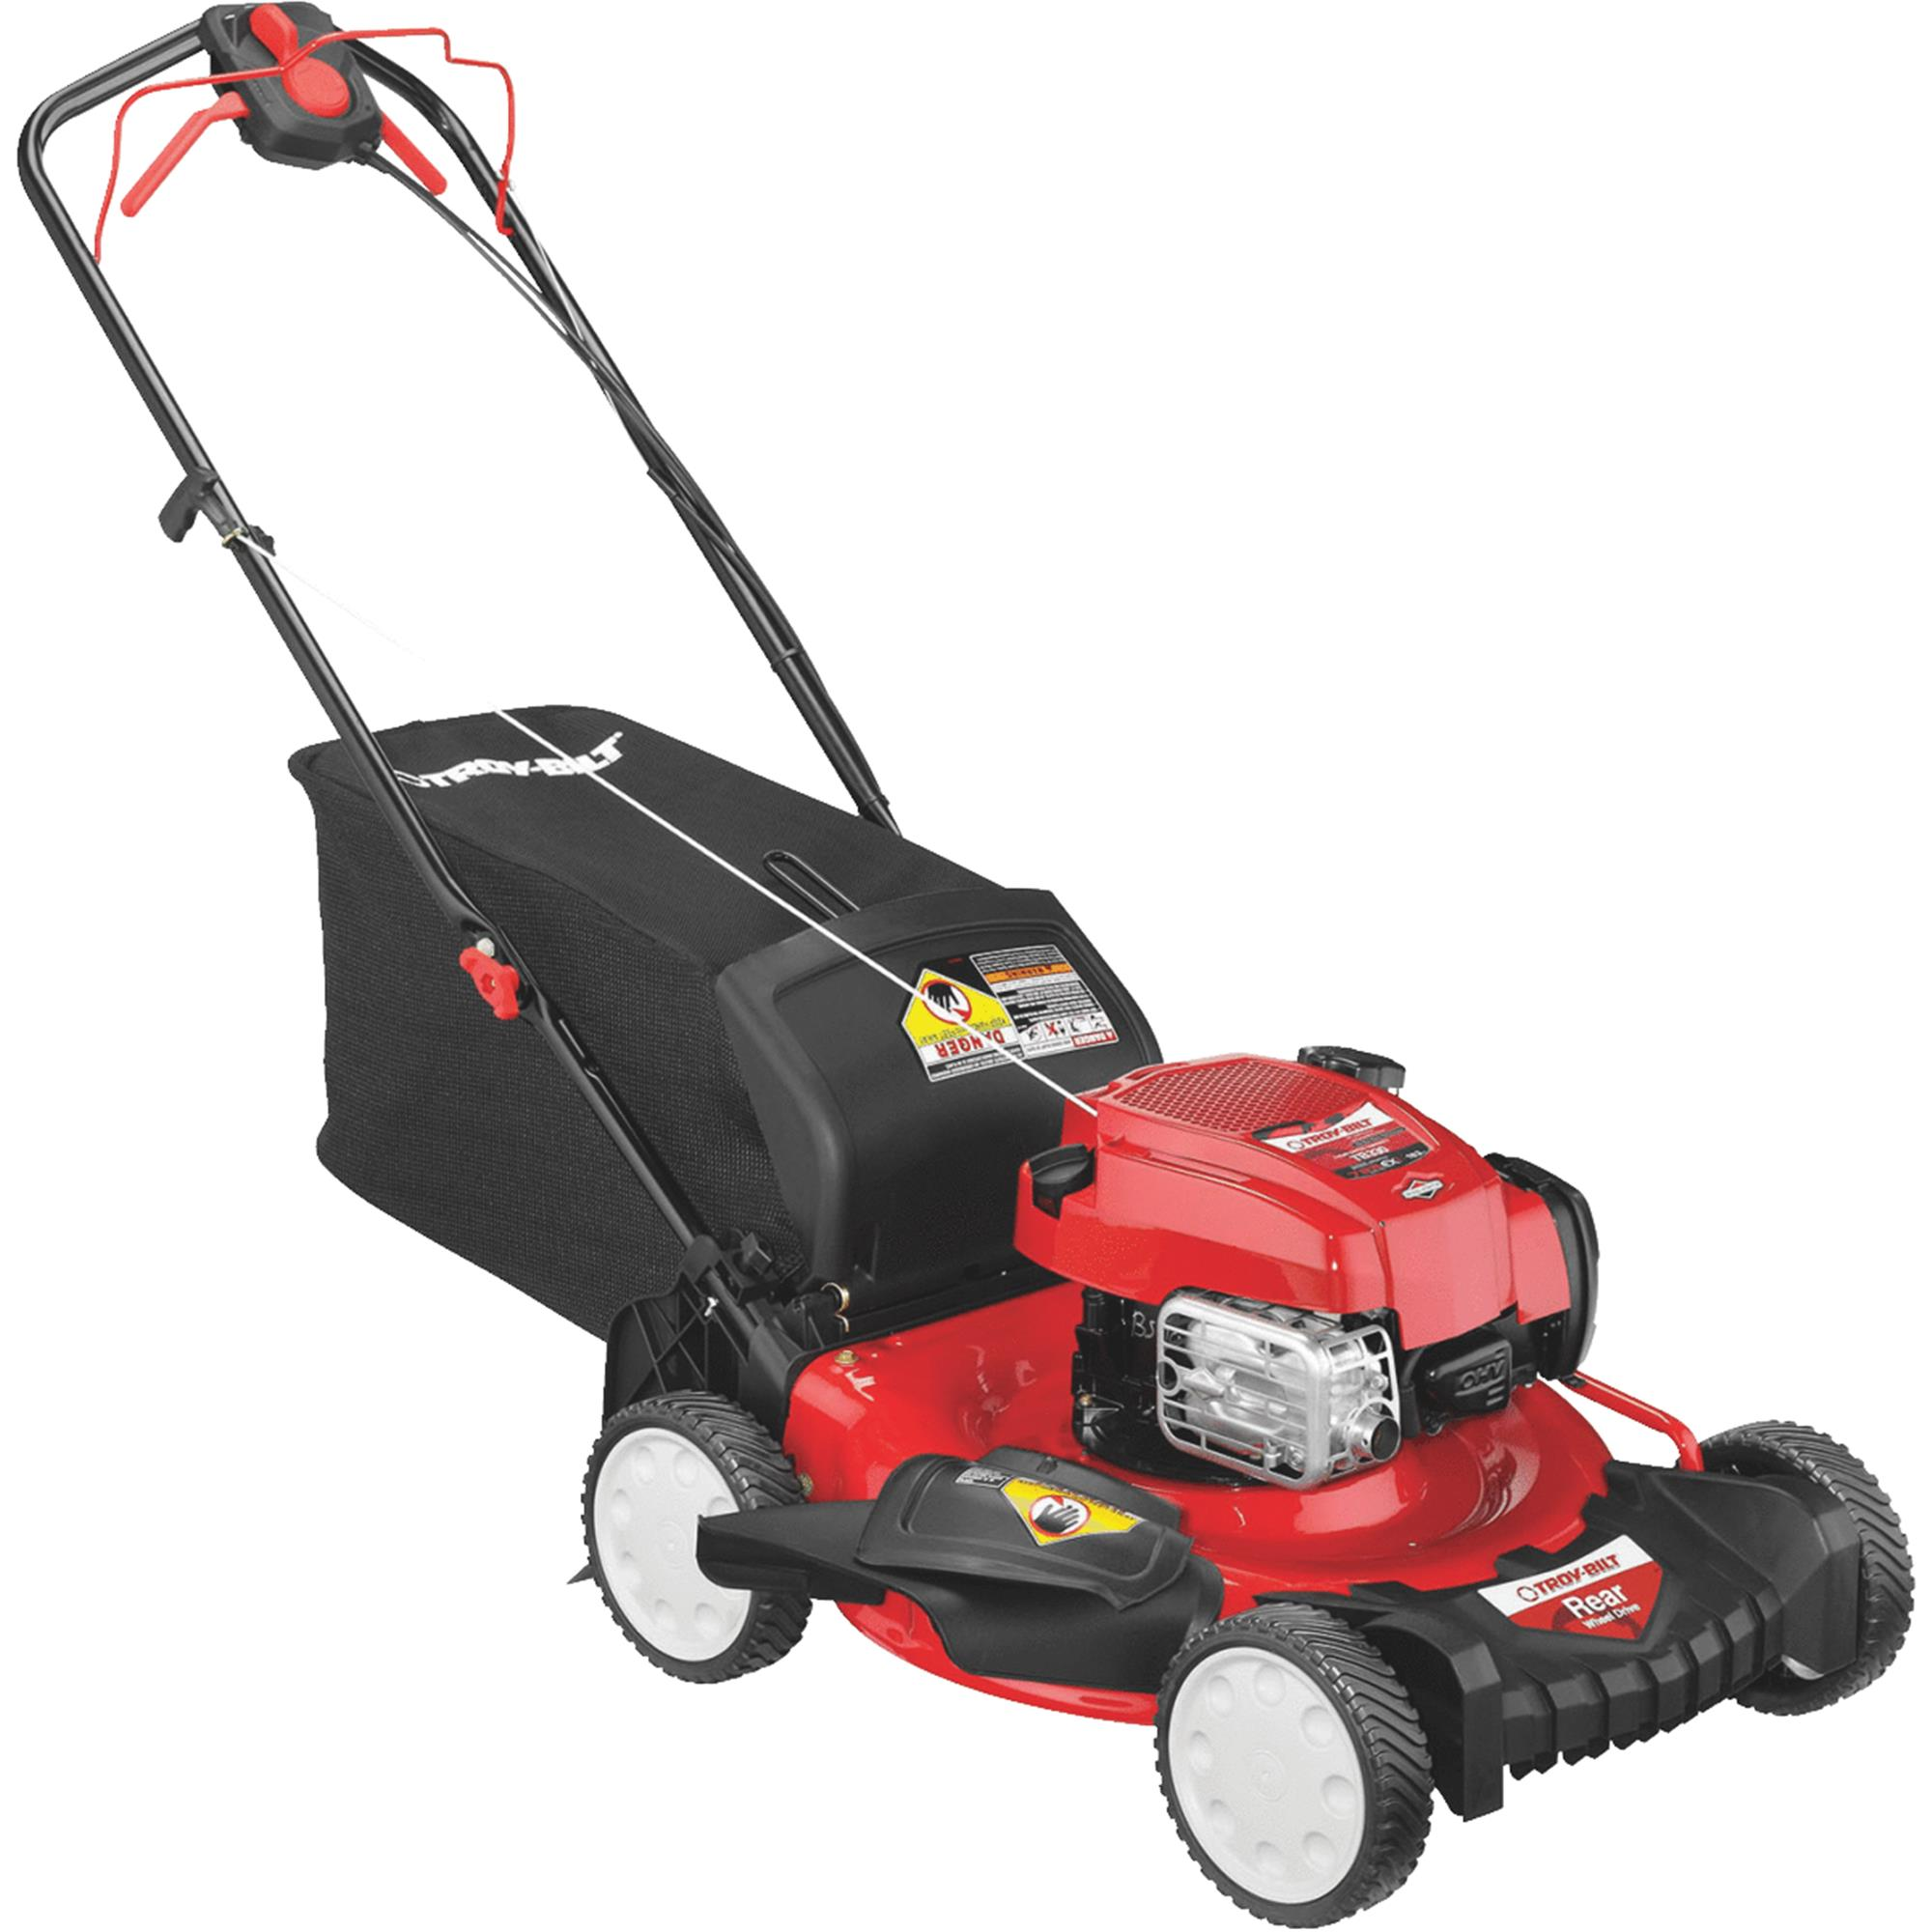 Troy-Bilt TB330 21 In. Rear Wheel Drive Self-Propelled Ga...